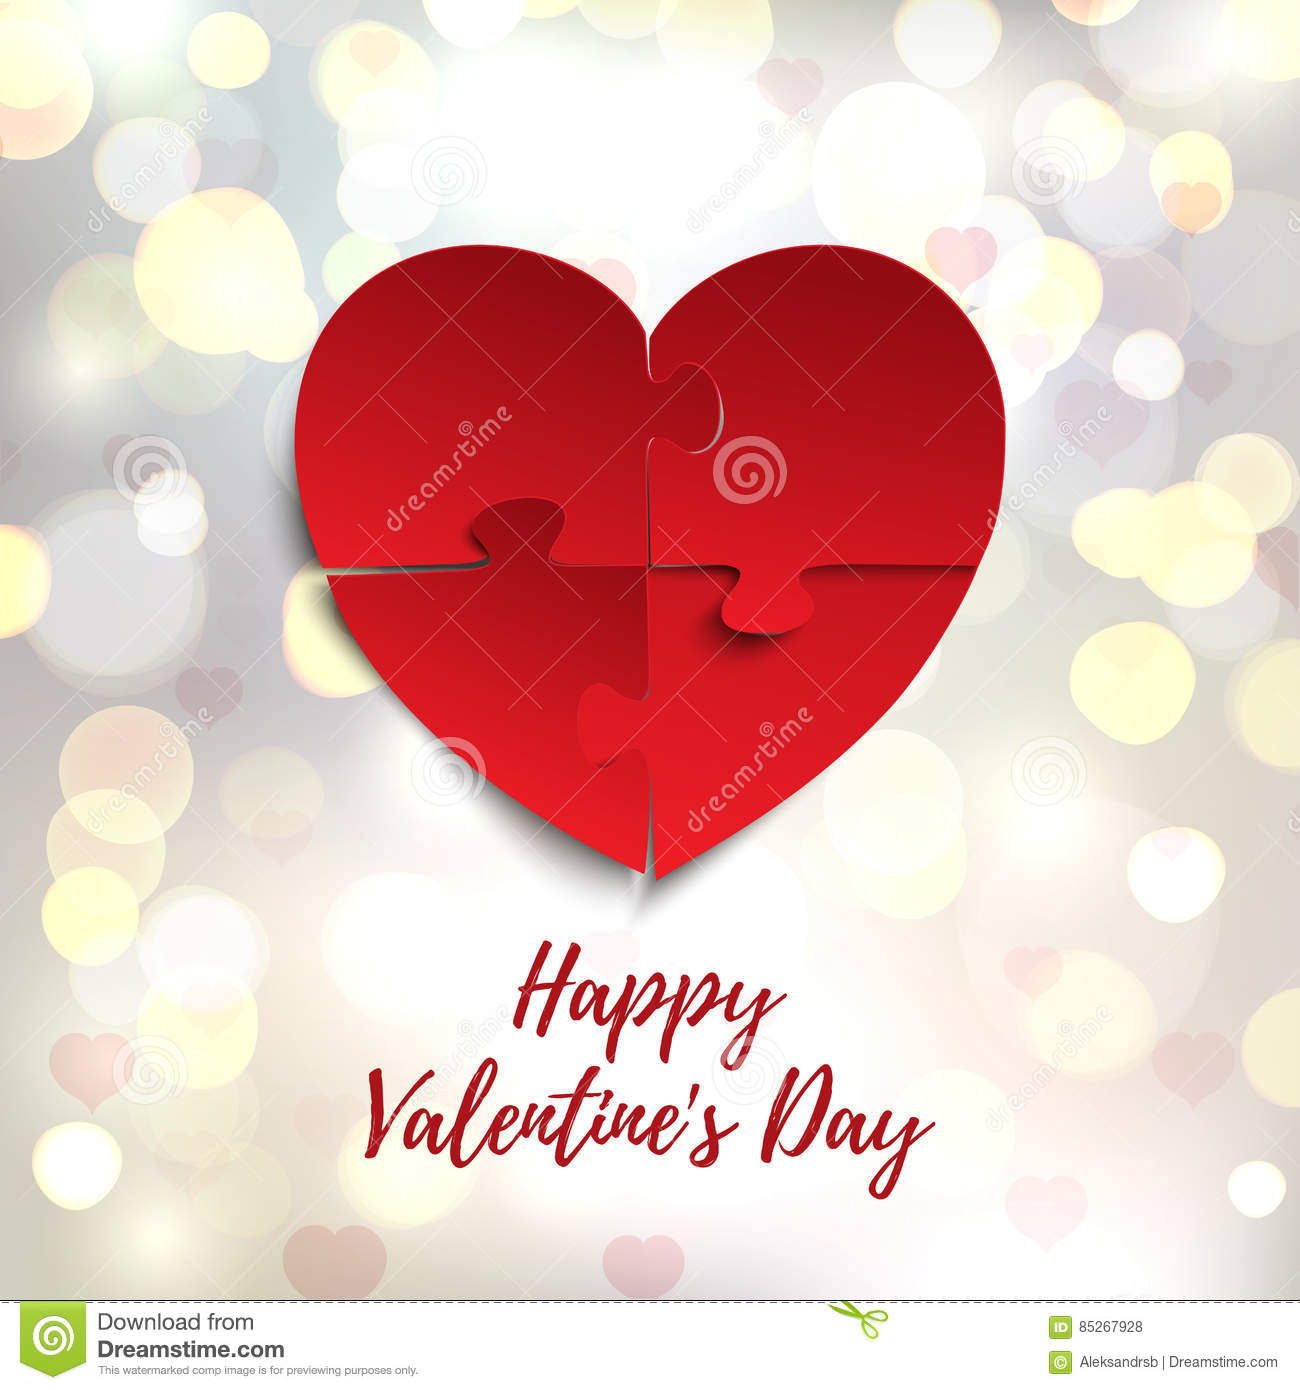 Happy Valentines Day, Greeting Card Template. Jigsaw Puzzle Pieces